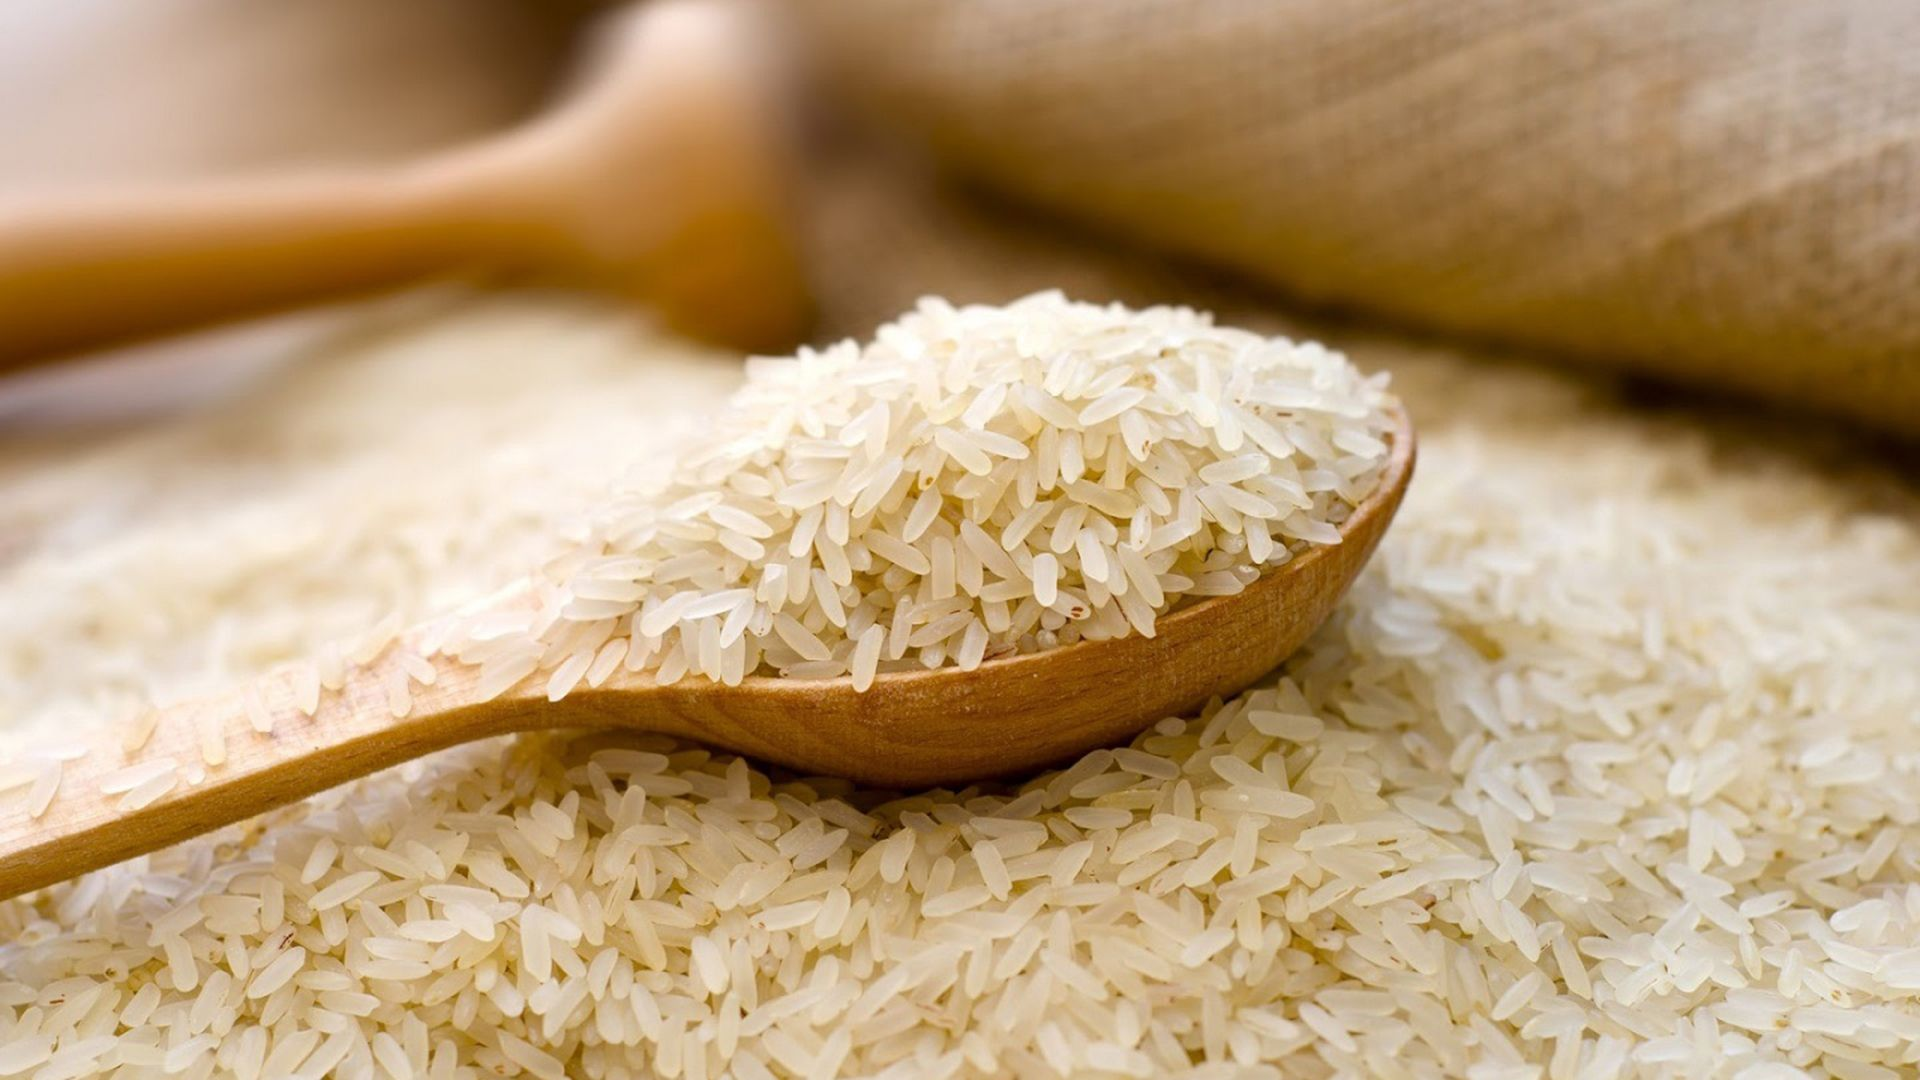 Rice picture free download